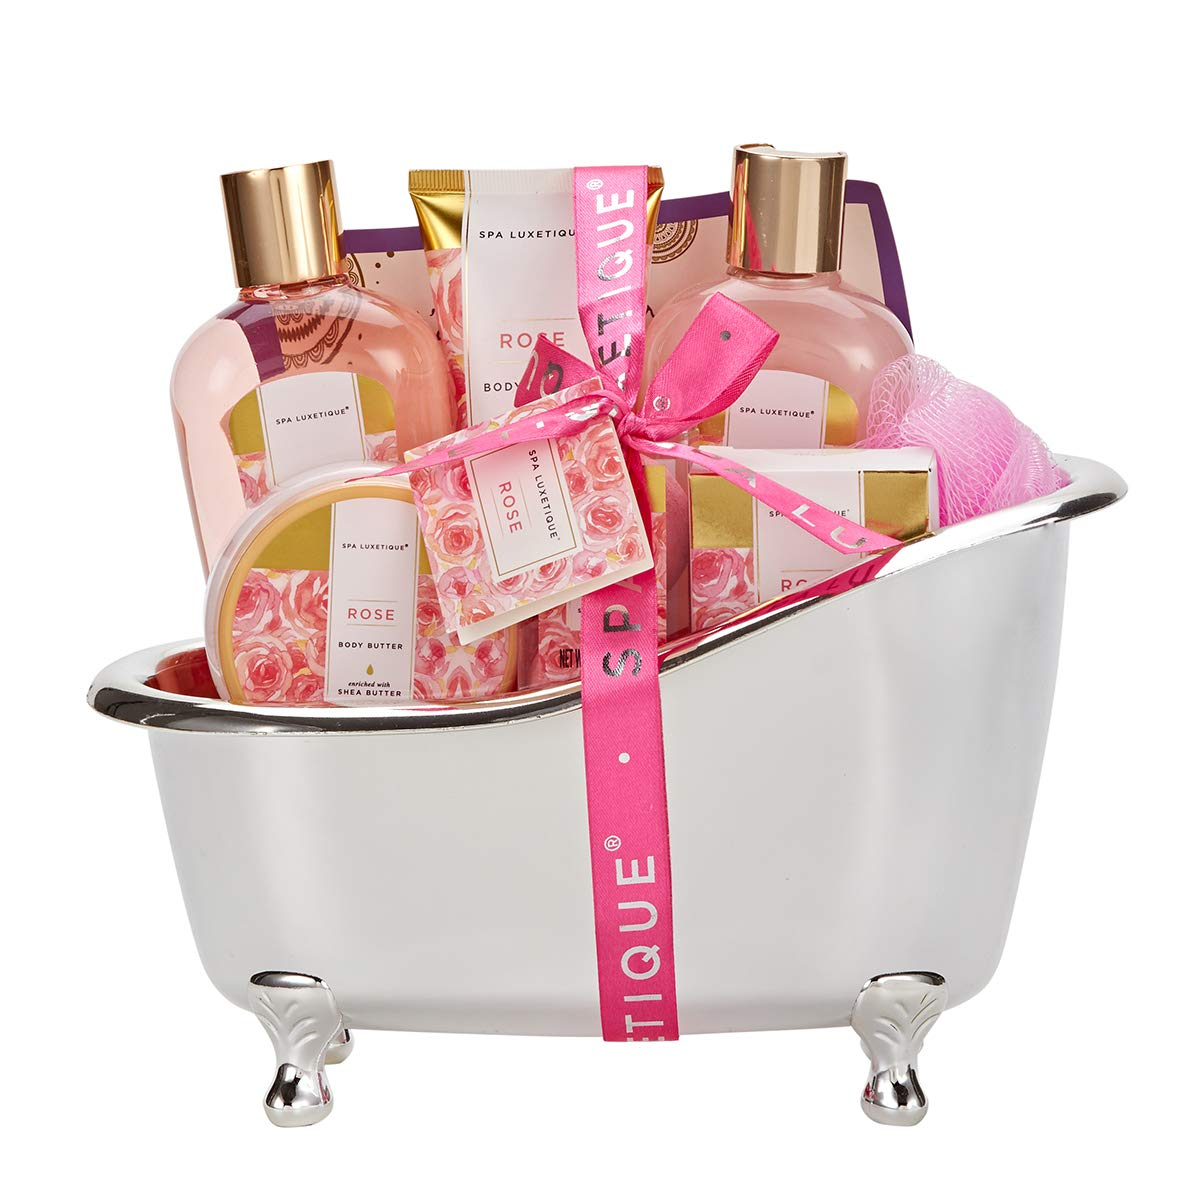 Spa Luxetique Spa Gift Basket Rose Fragrance, Premium 8pc Gift Baskets for Women, Cute Bath Tub Holder - Best Holiday Spa Gift Set for Women- Bath Bombs, Shower Gel, Body Lotion & More! by spa luxetique